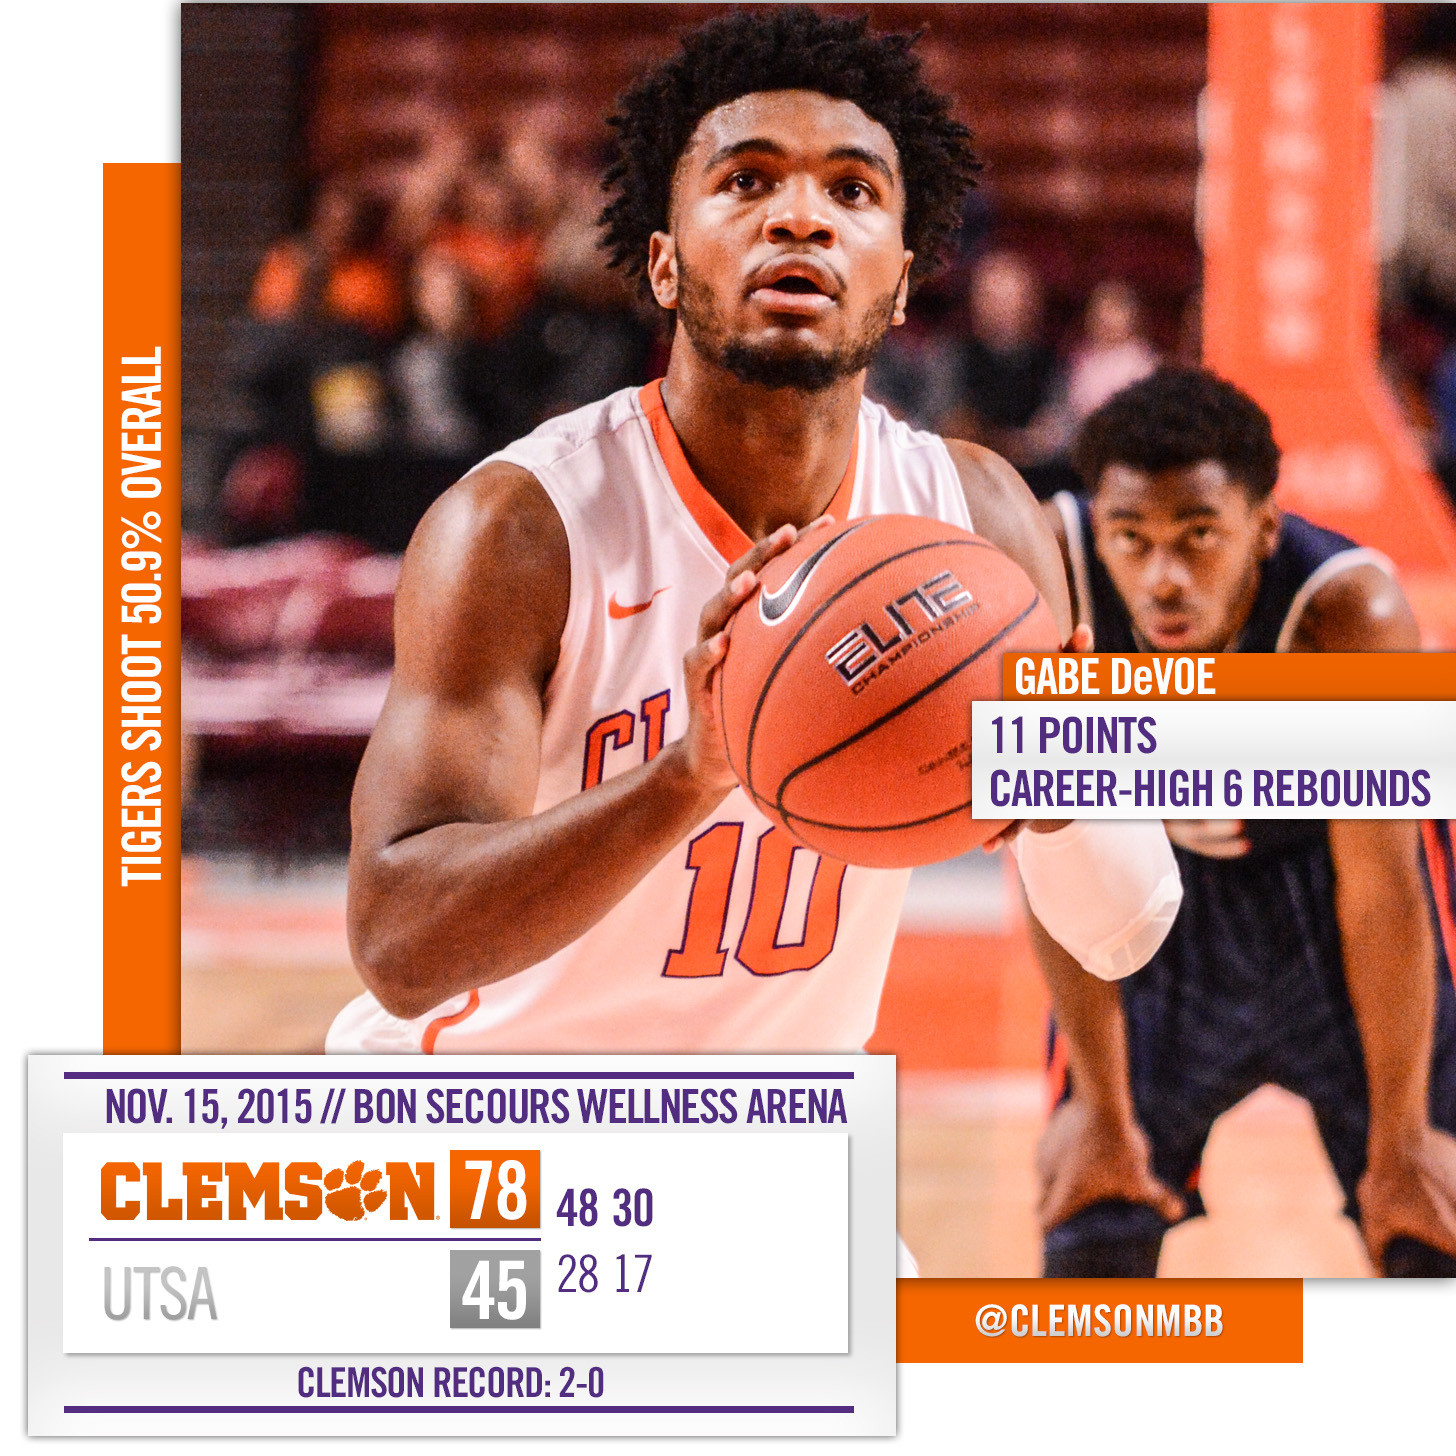 Tigers Down UTSA, Move to 2-0